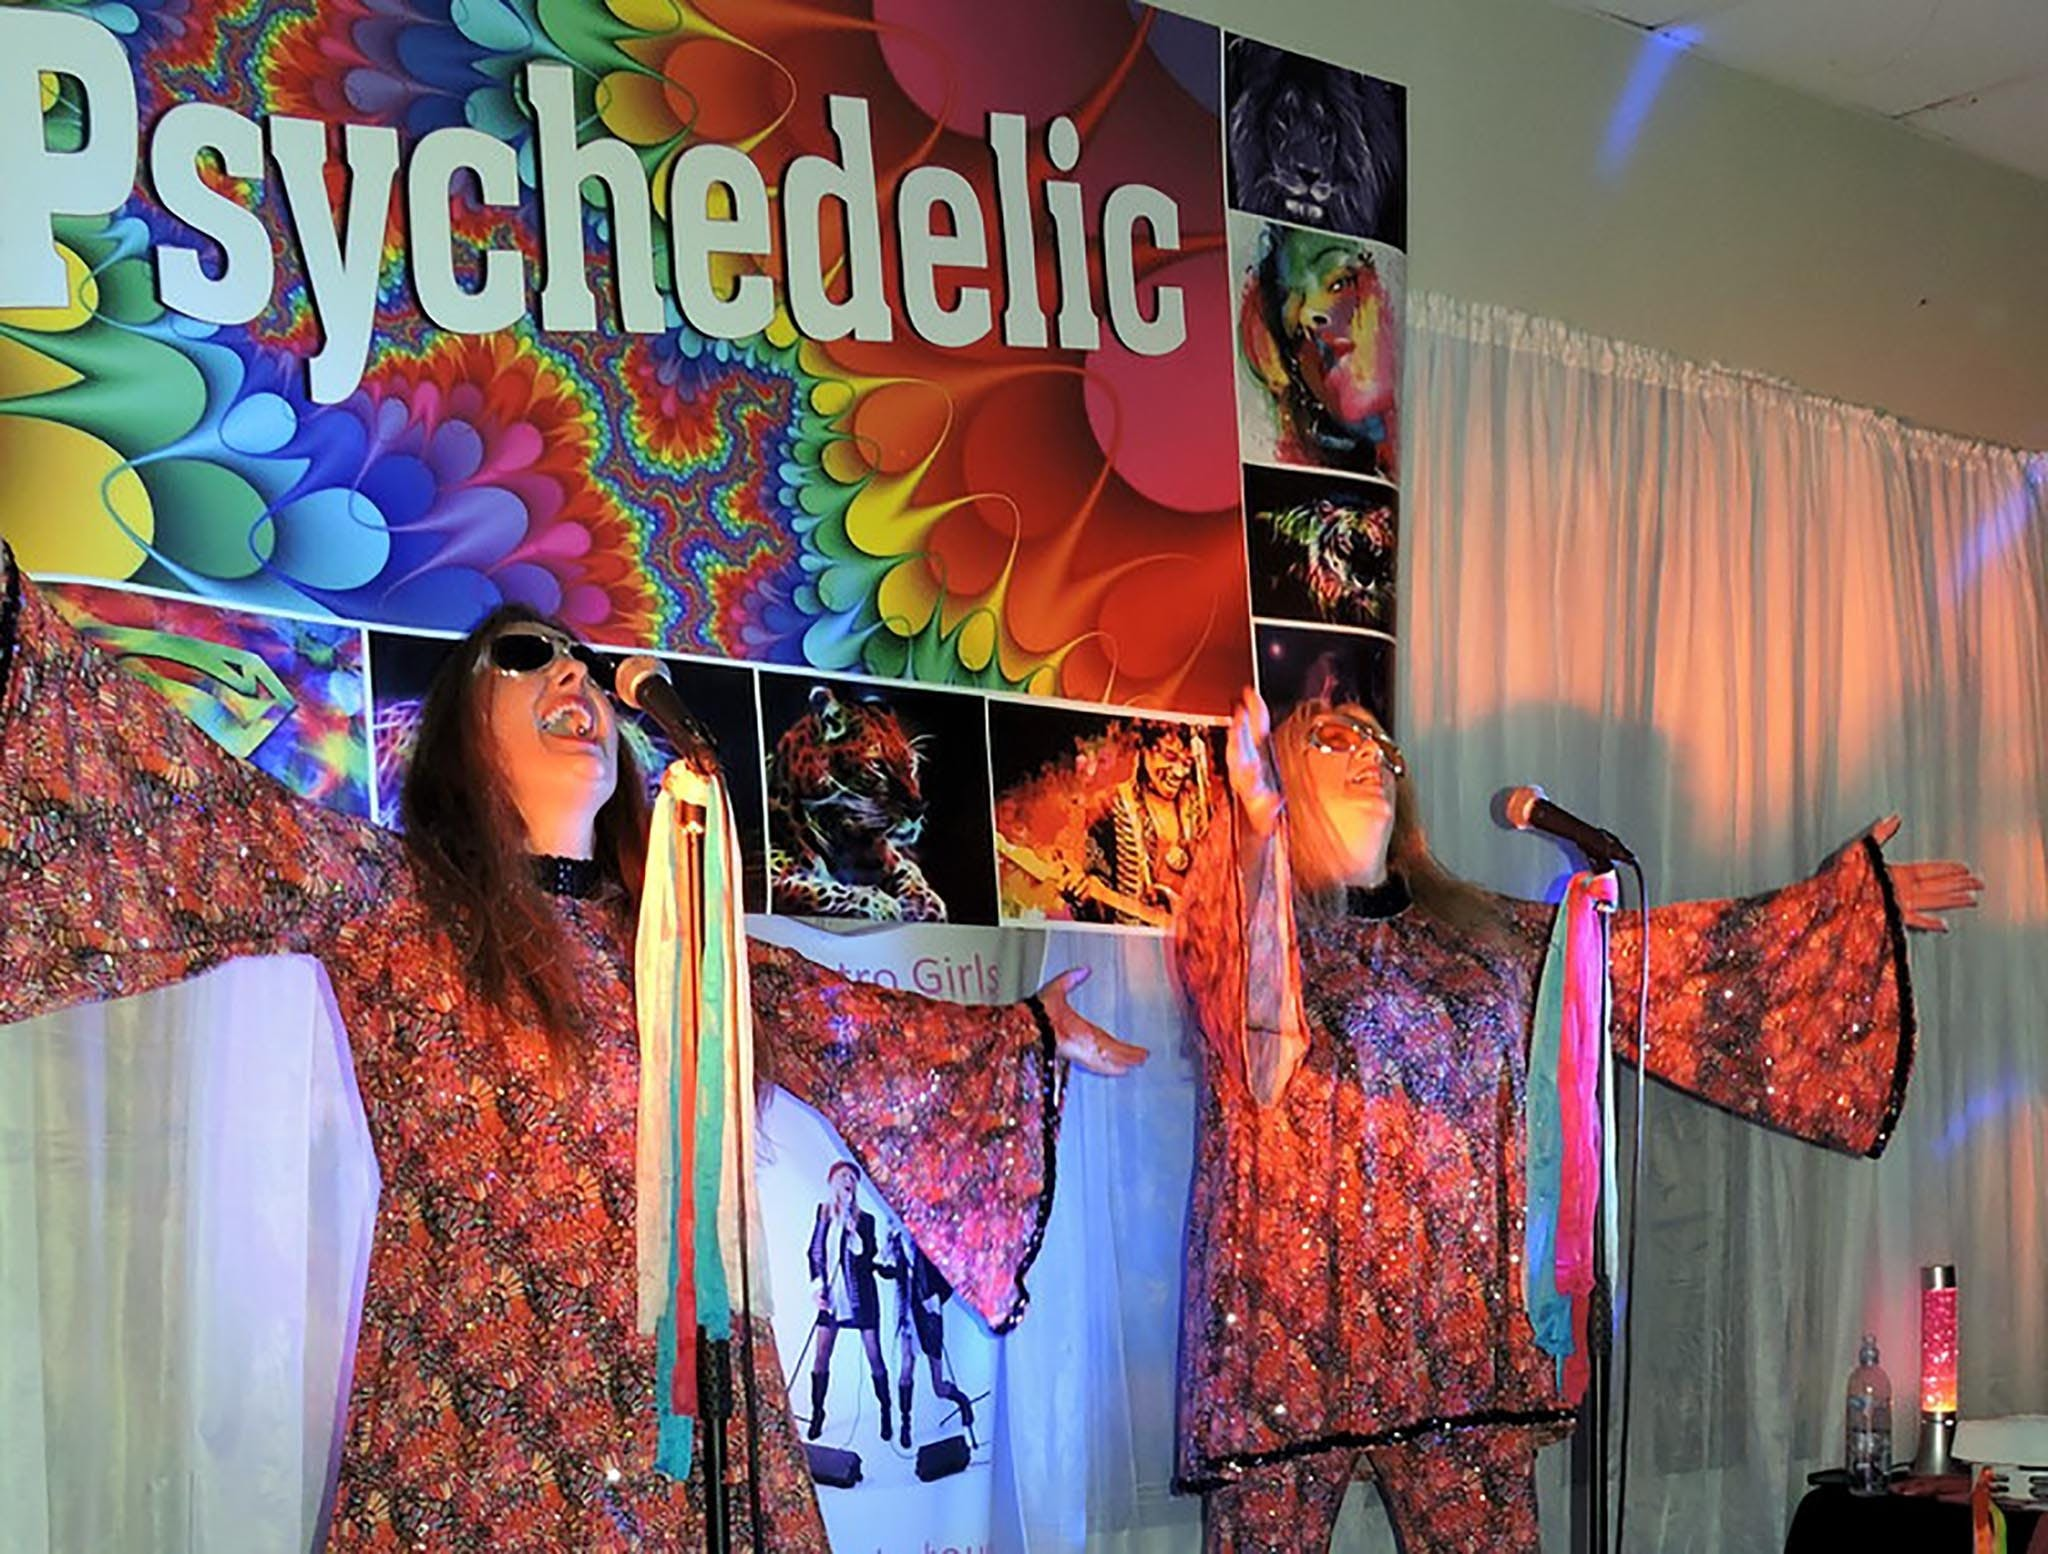 Psychedelic 70s Show The Retro Girls - Accommodation in Surfers Paradise